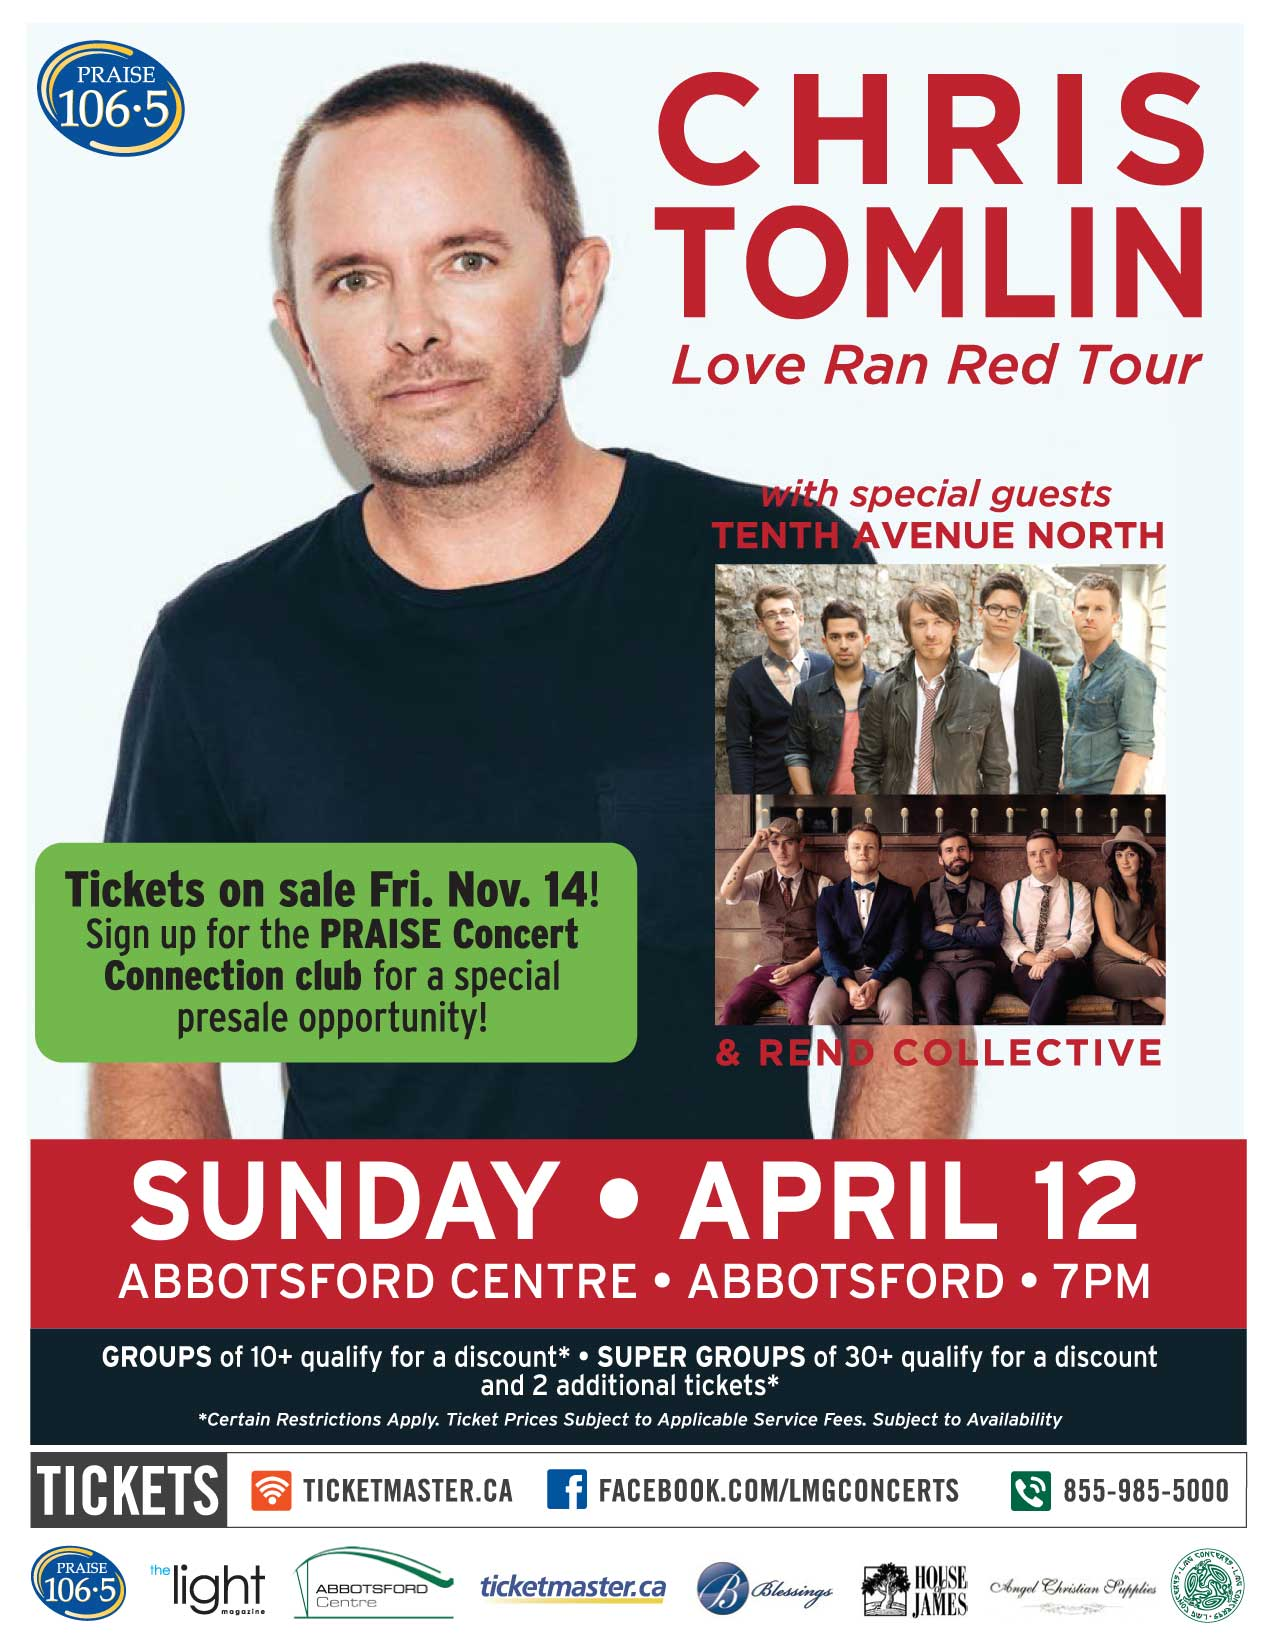 Chris Tomlin Makes His First Ever Tour Stop In BC with the 'Love Ran Red' Tour!